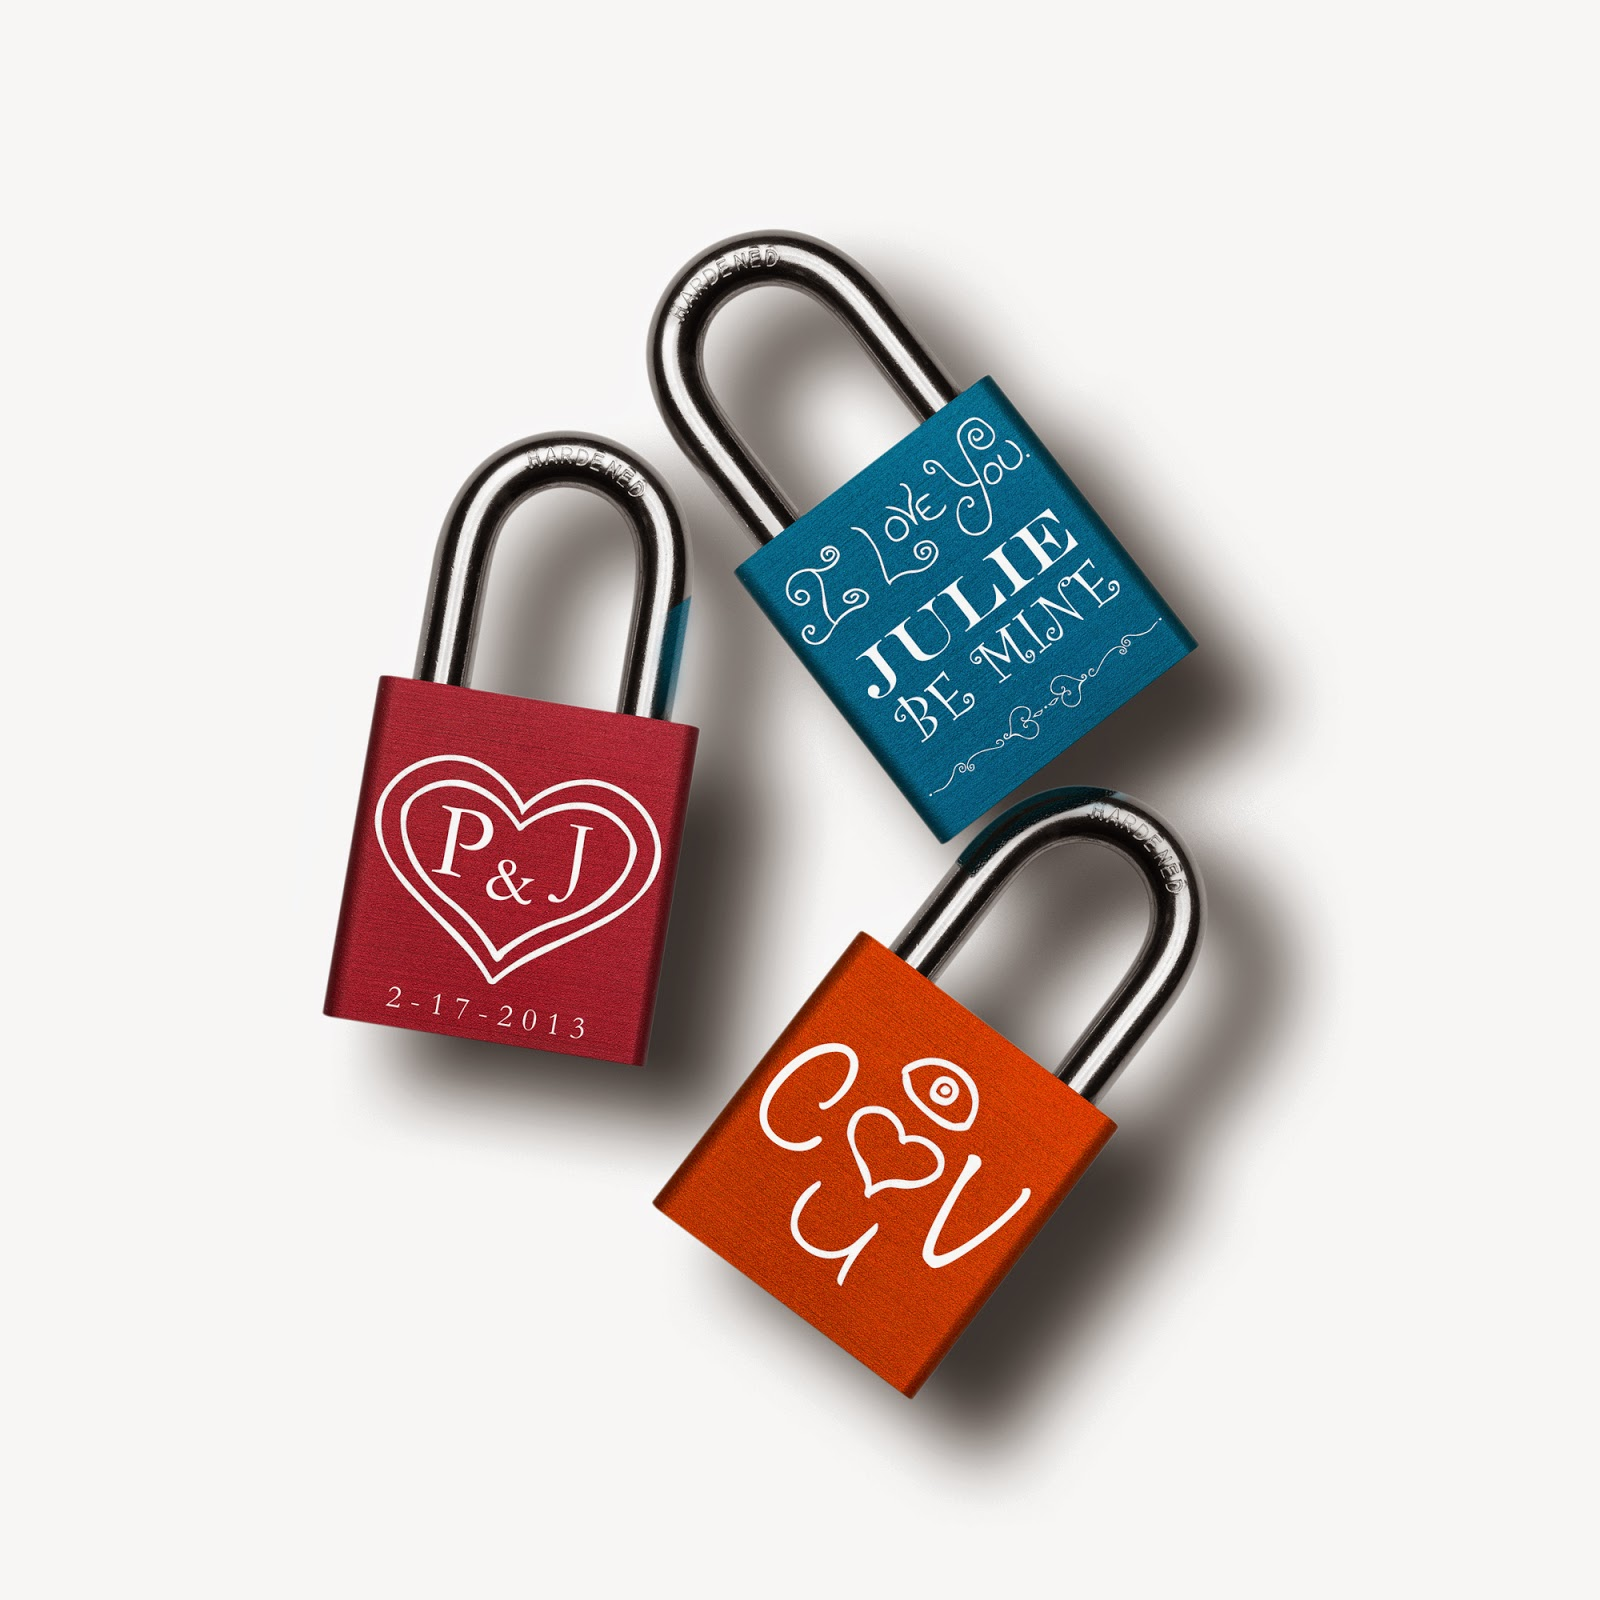 Dec 09,  · If you manage to make a person smile, then you can change the whole world. Let's see where caring and sharing can take us to. Watch the charming reel of 'Love Locks' captured.